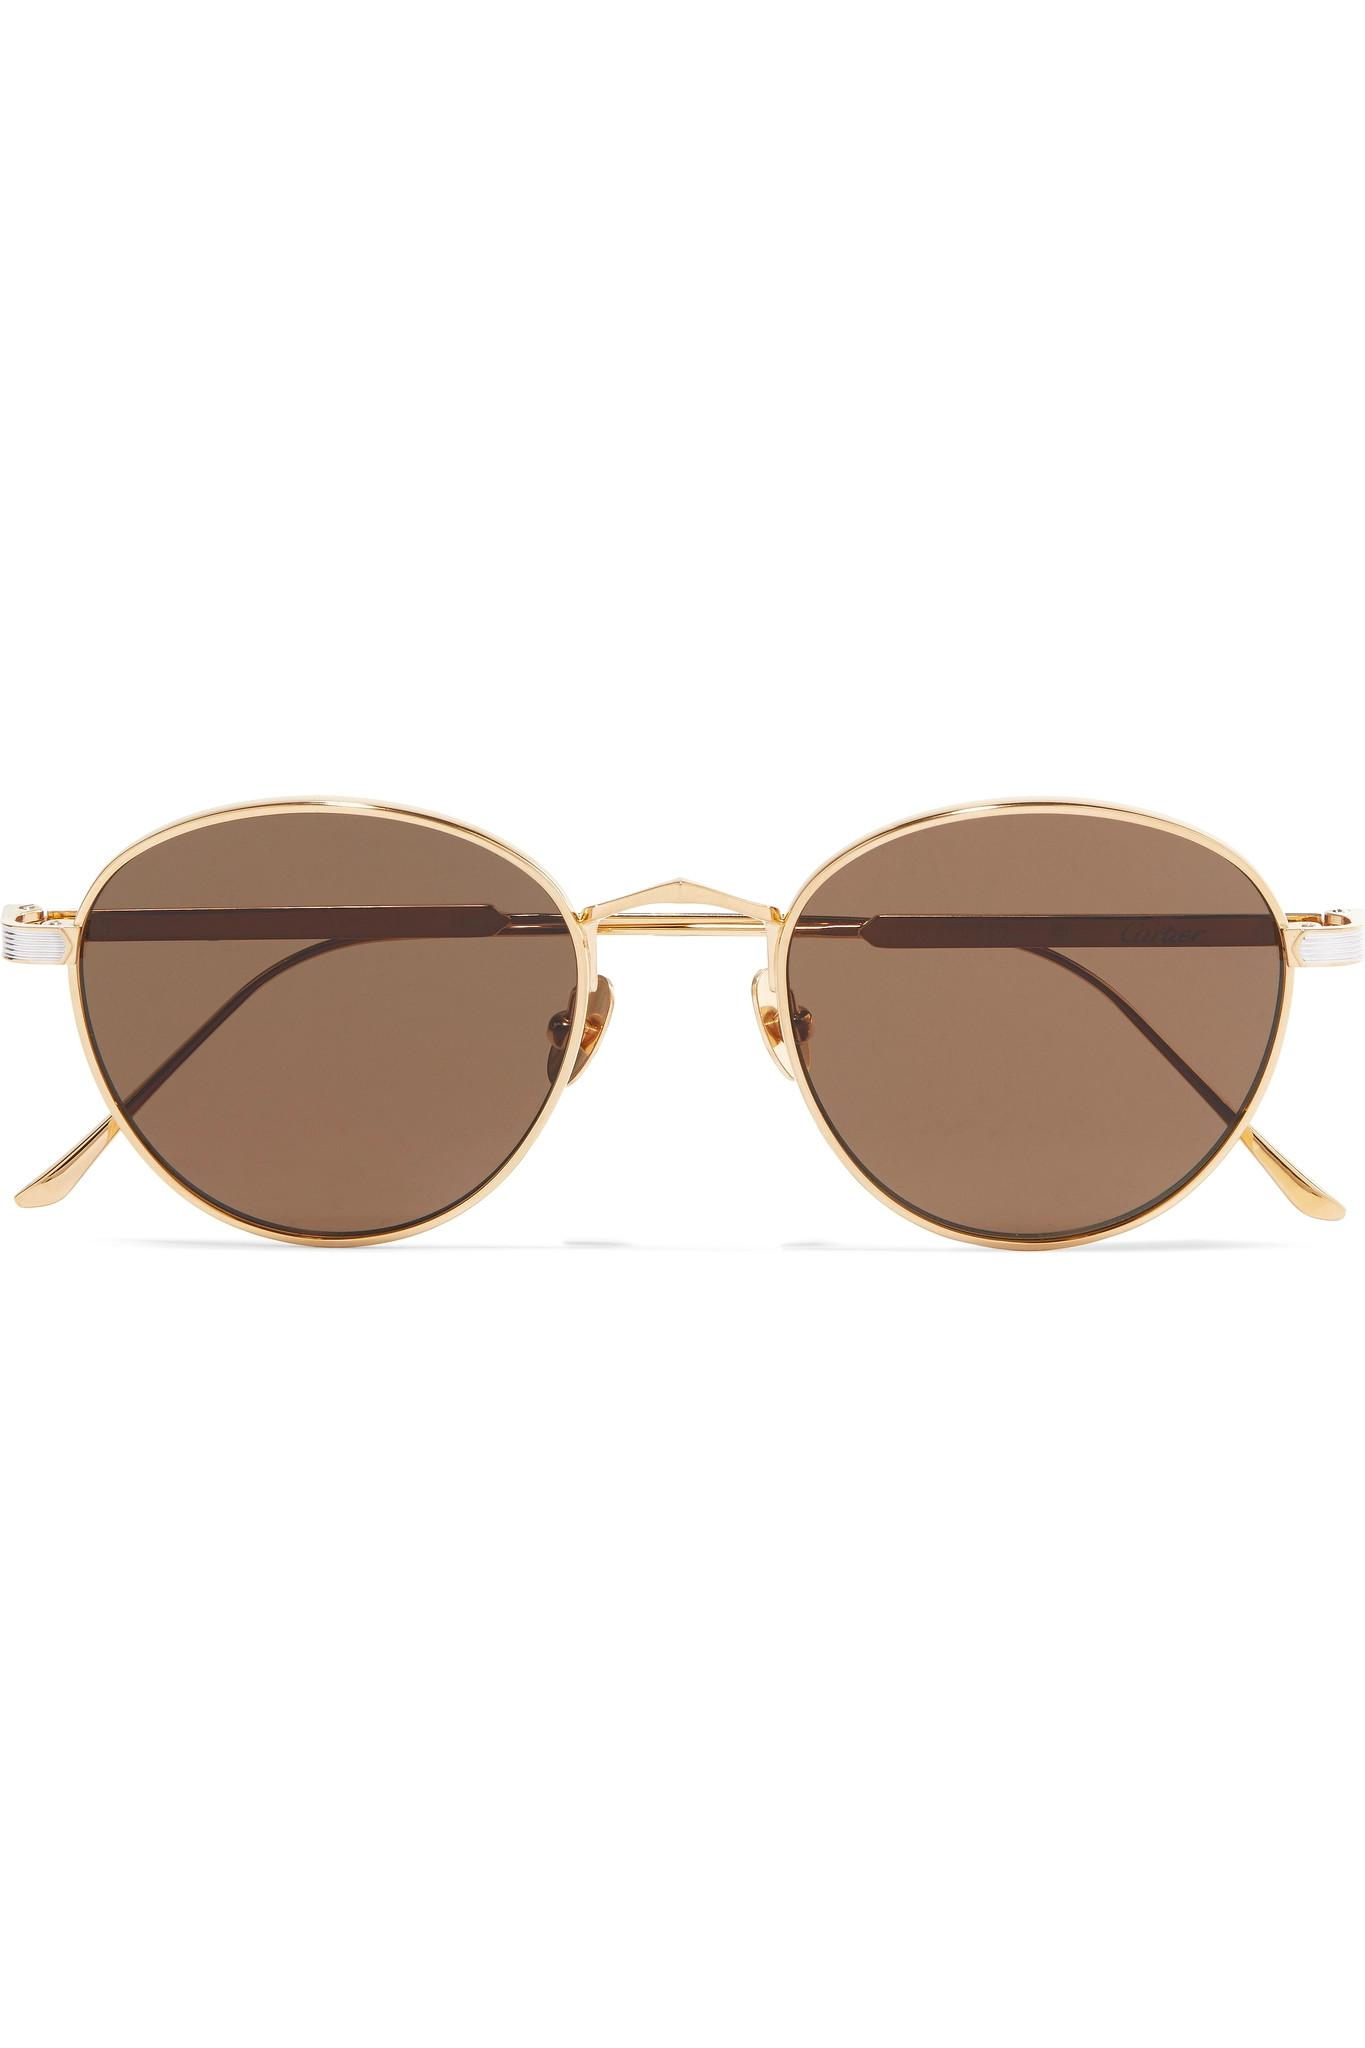 dc9d3291fa5e Cartier - Metallic Round-frame Gold And Silver-plated Sunglasses - Lyst.  View fullscreen